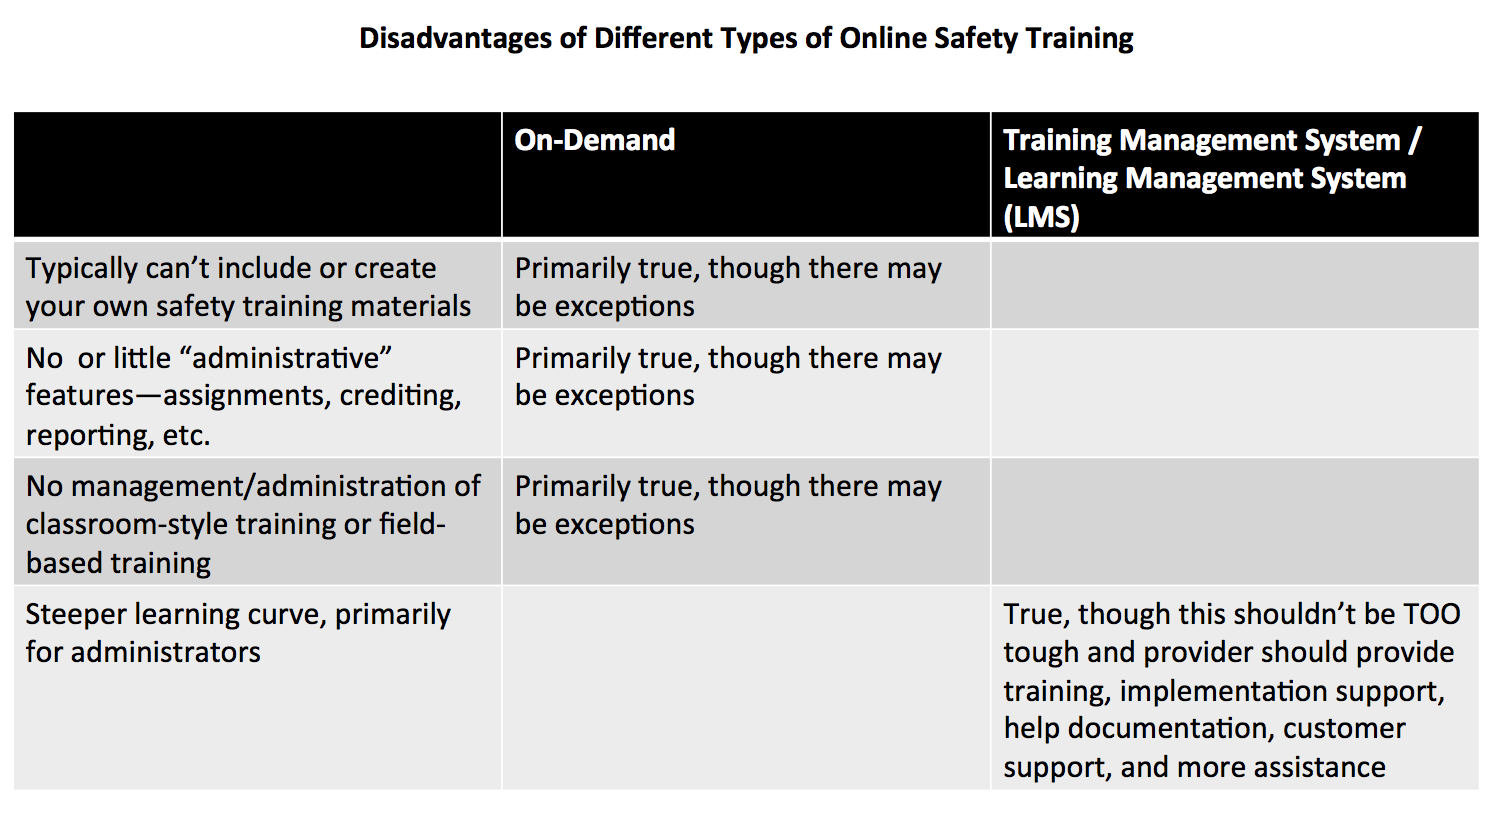 Disadvantages of different types of online safety training